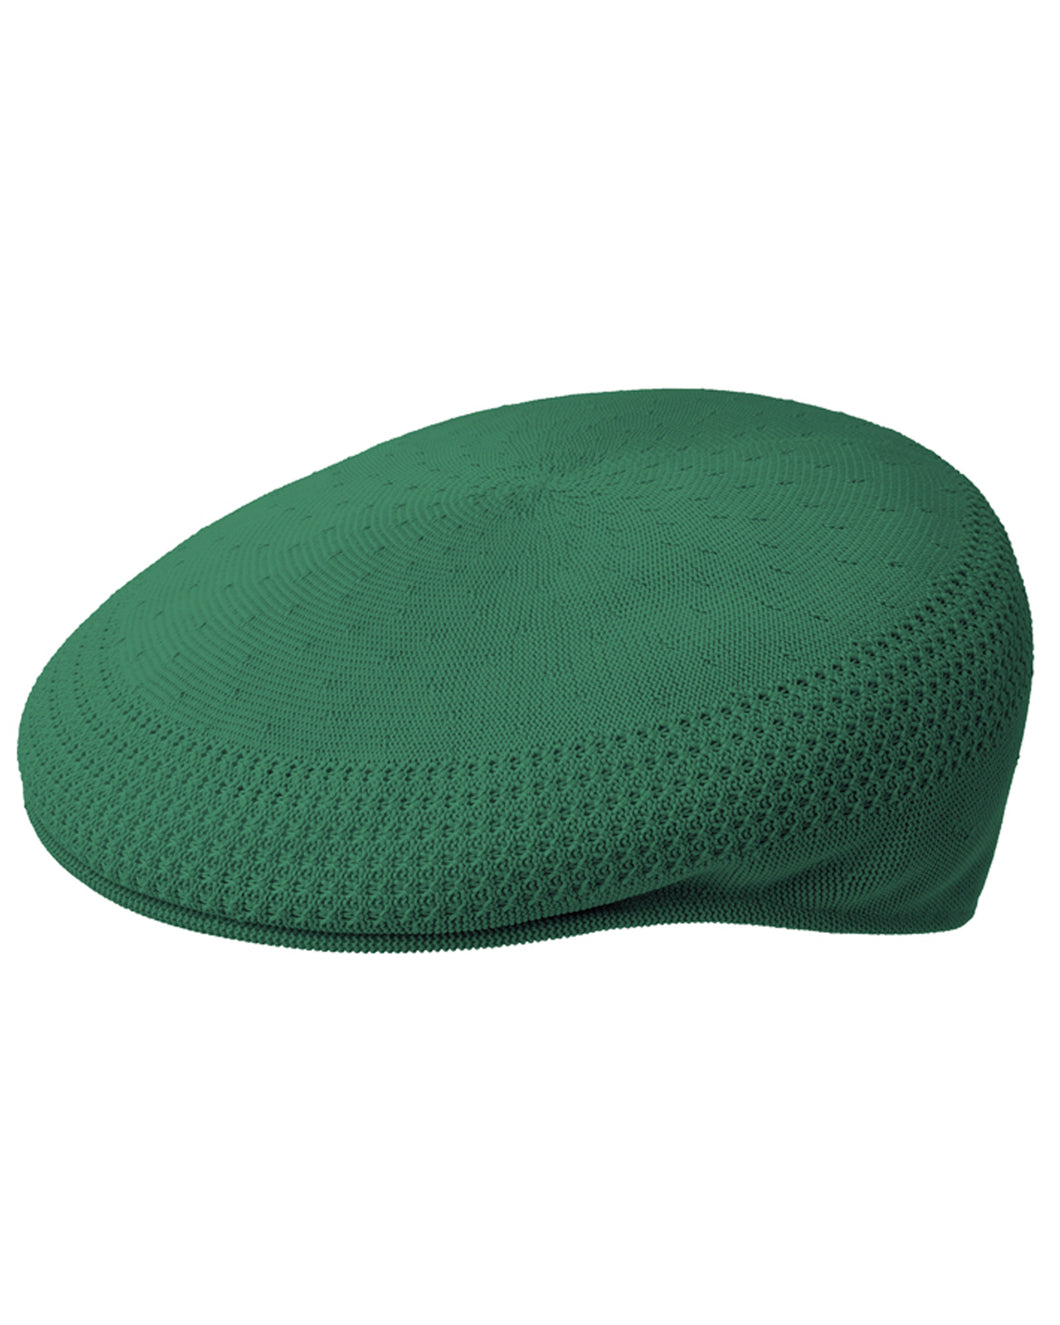 Kangol Tropic 504 Ventair Masters Green